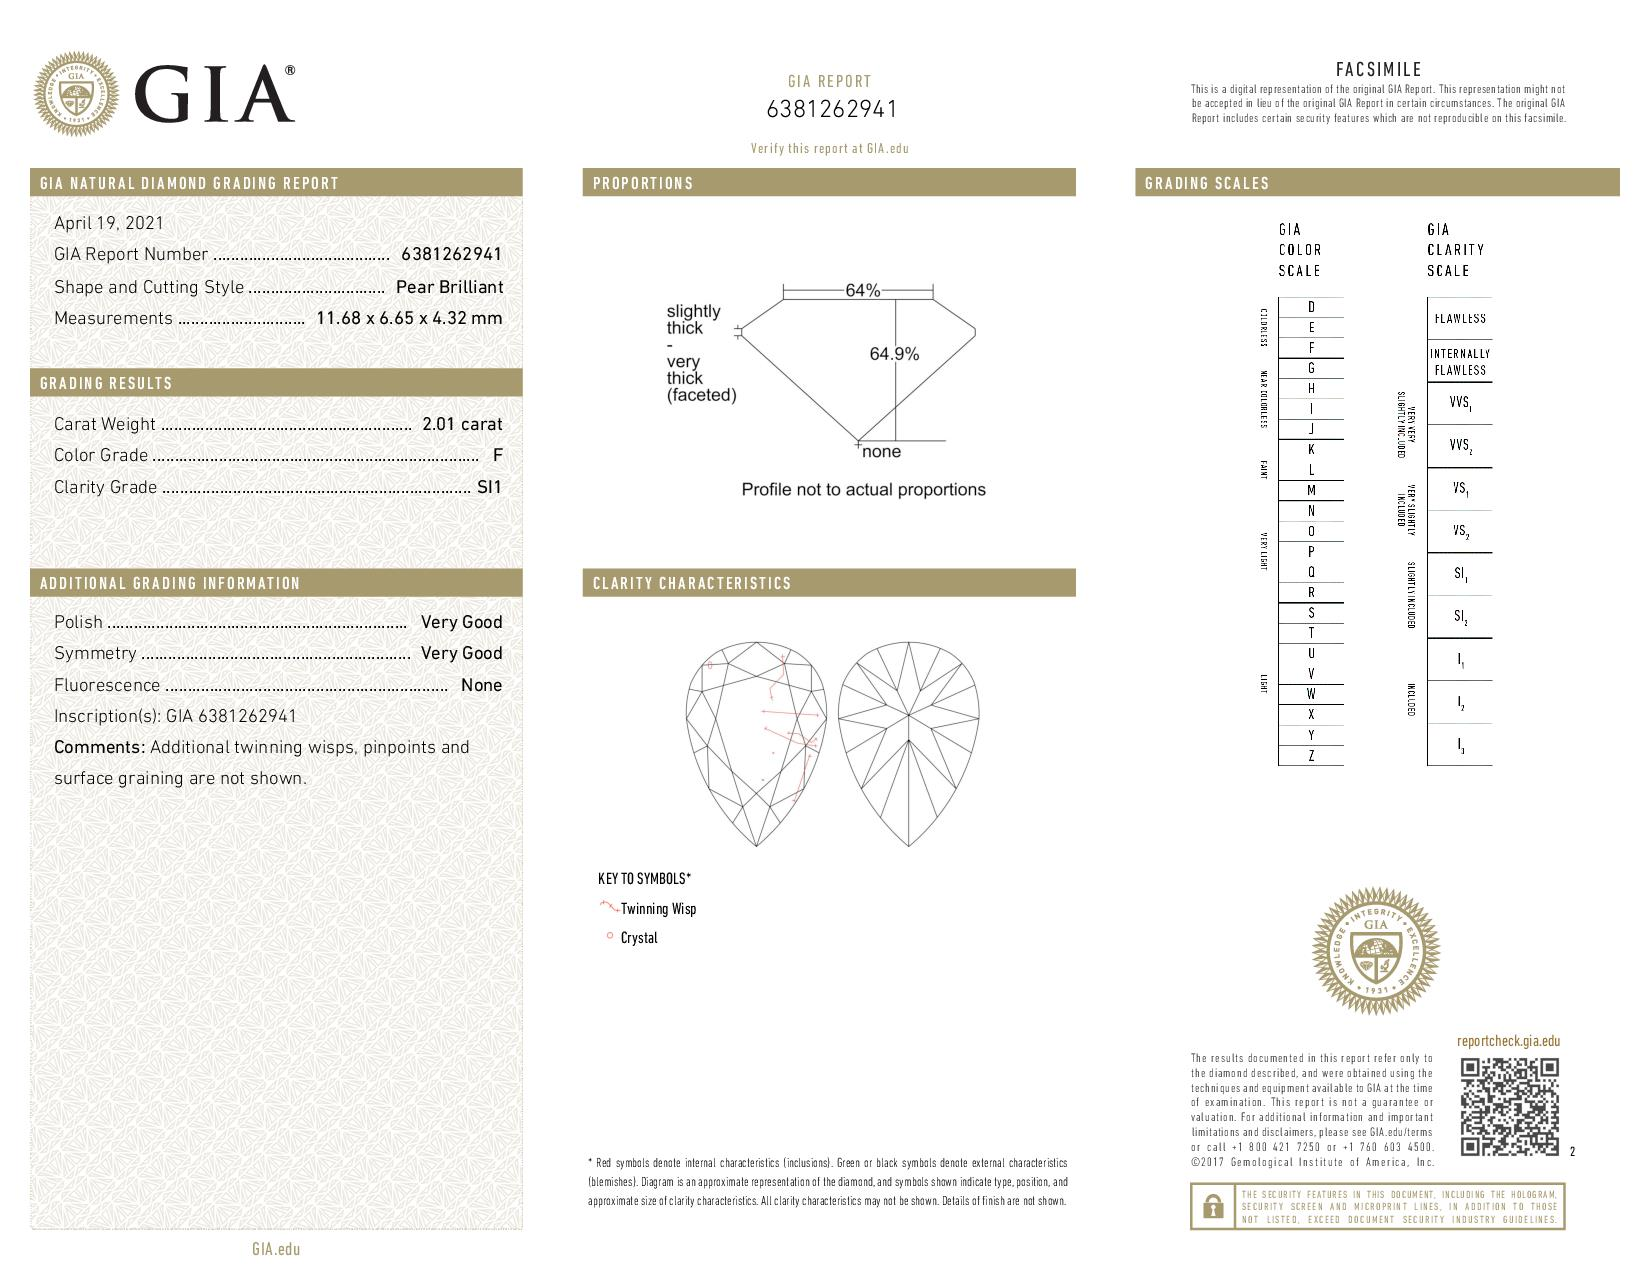 This is a 2.01 carat pear shape, F color, SI1 clarity natural diamond accompanied by a GIA grading report.